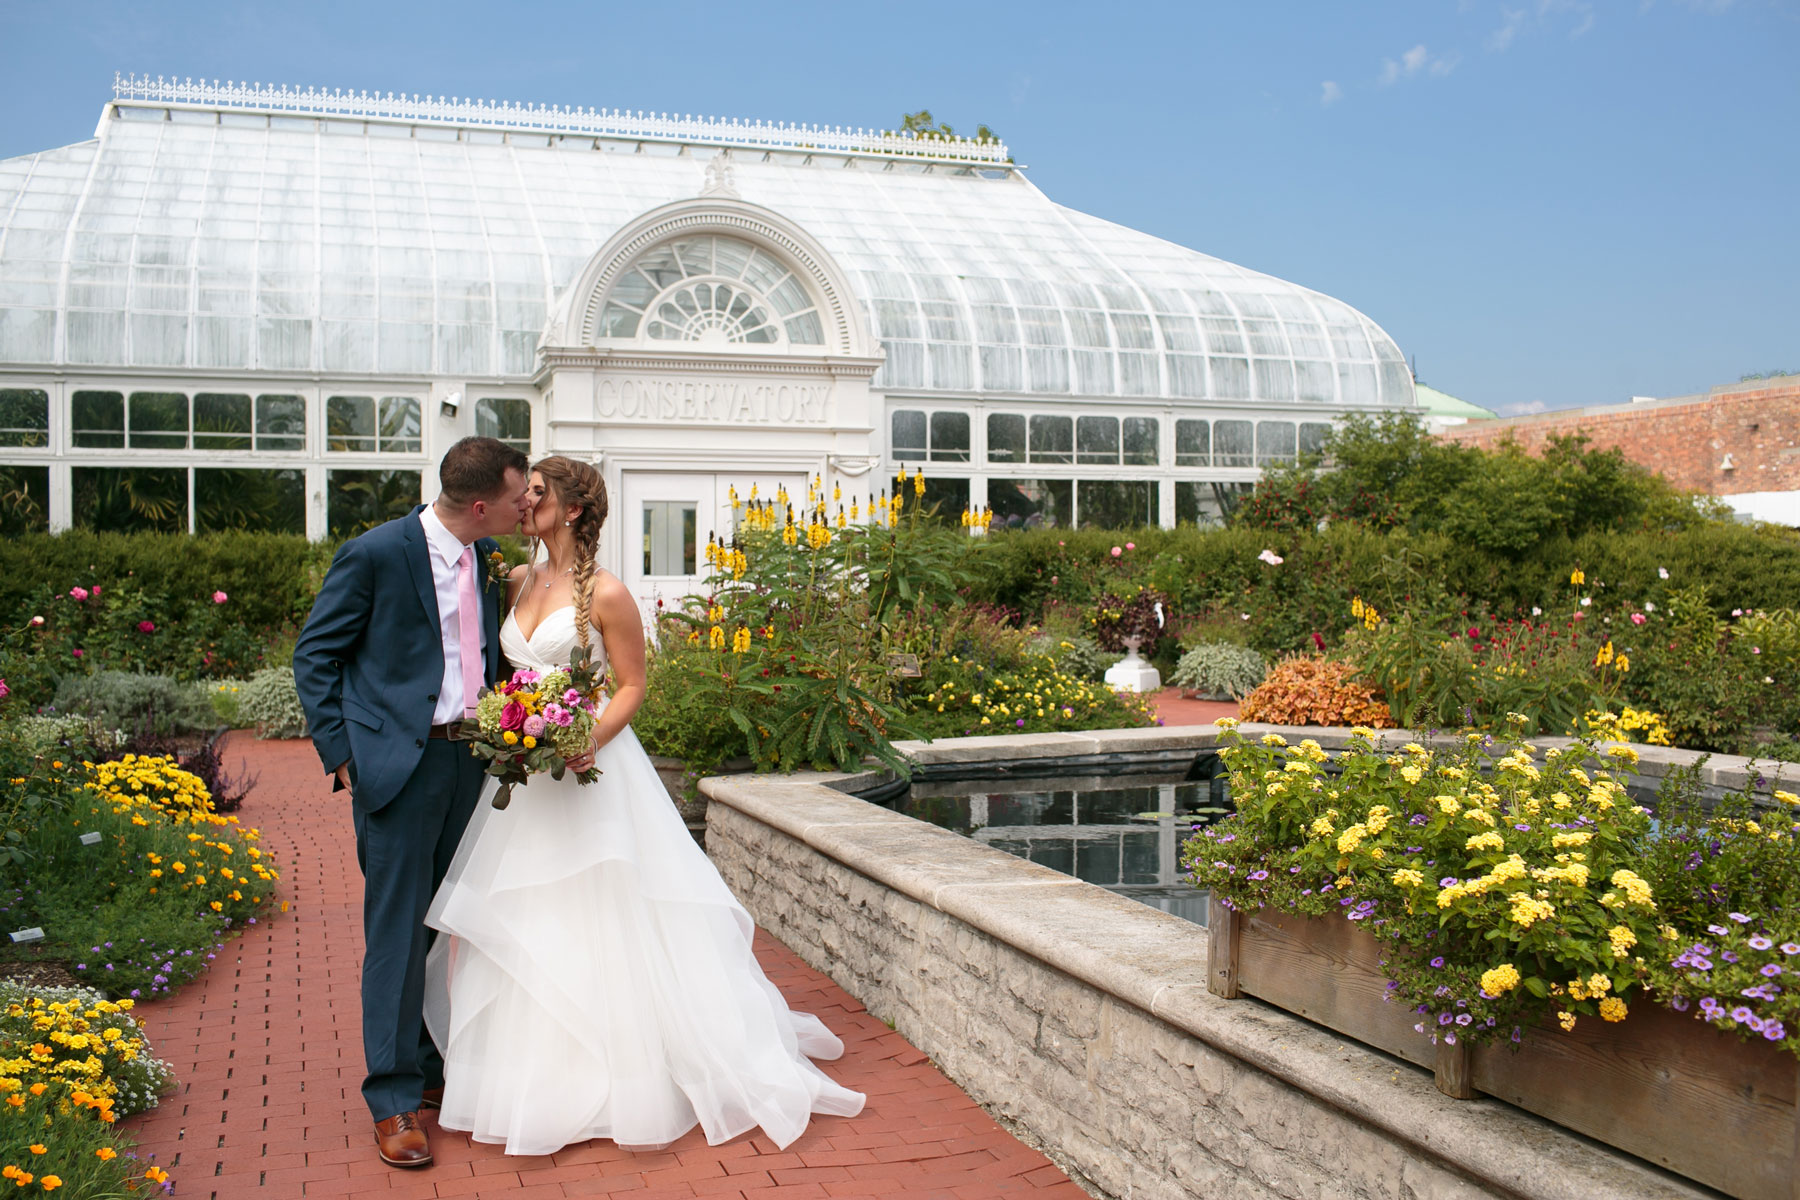 Shawna + Ryan - Blooming florals, geometric shapes, dancing + endless love... does it get any better?